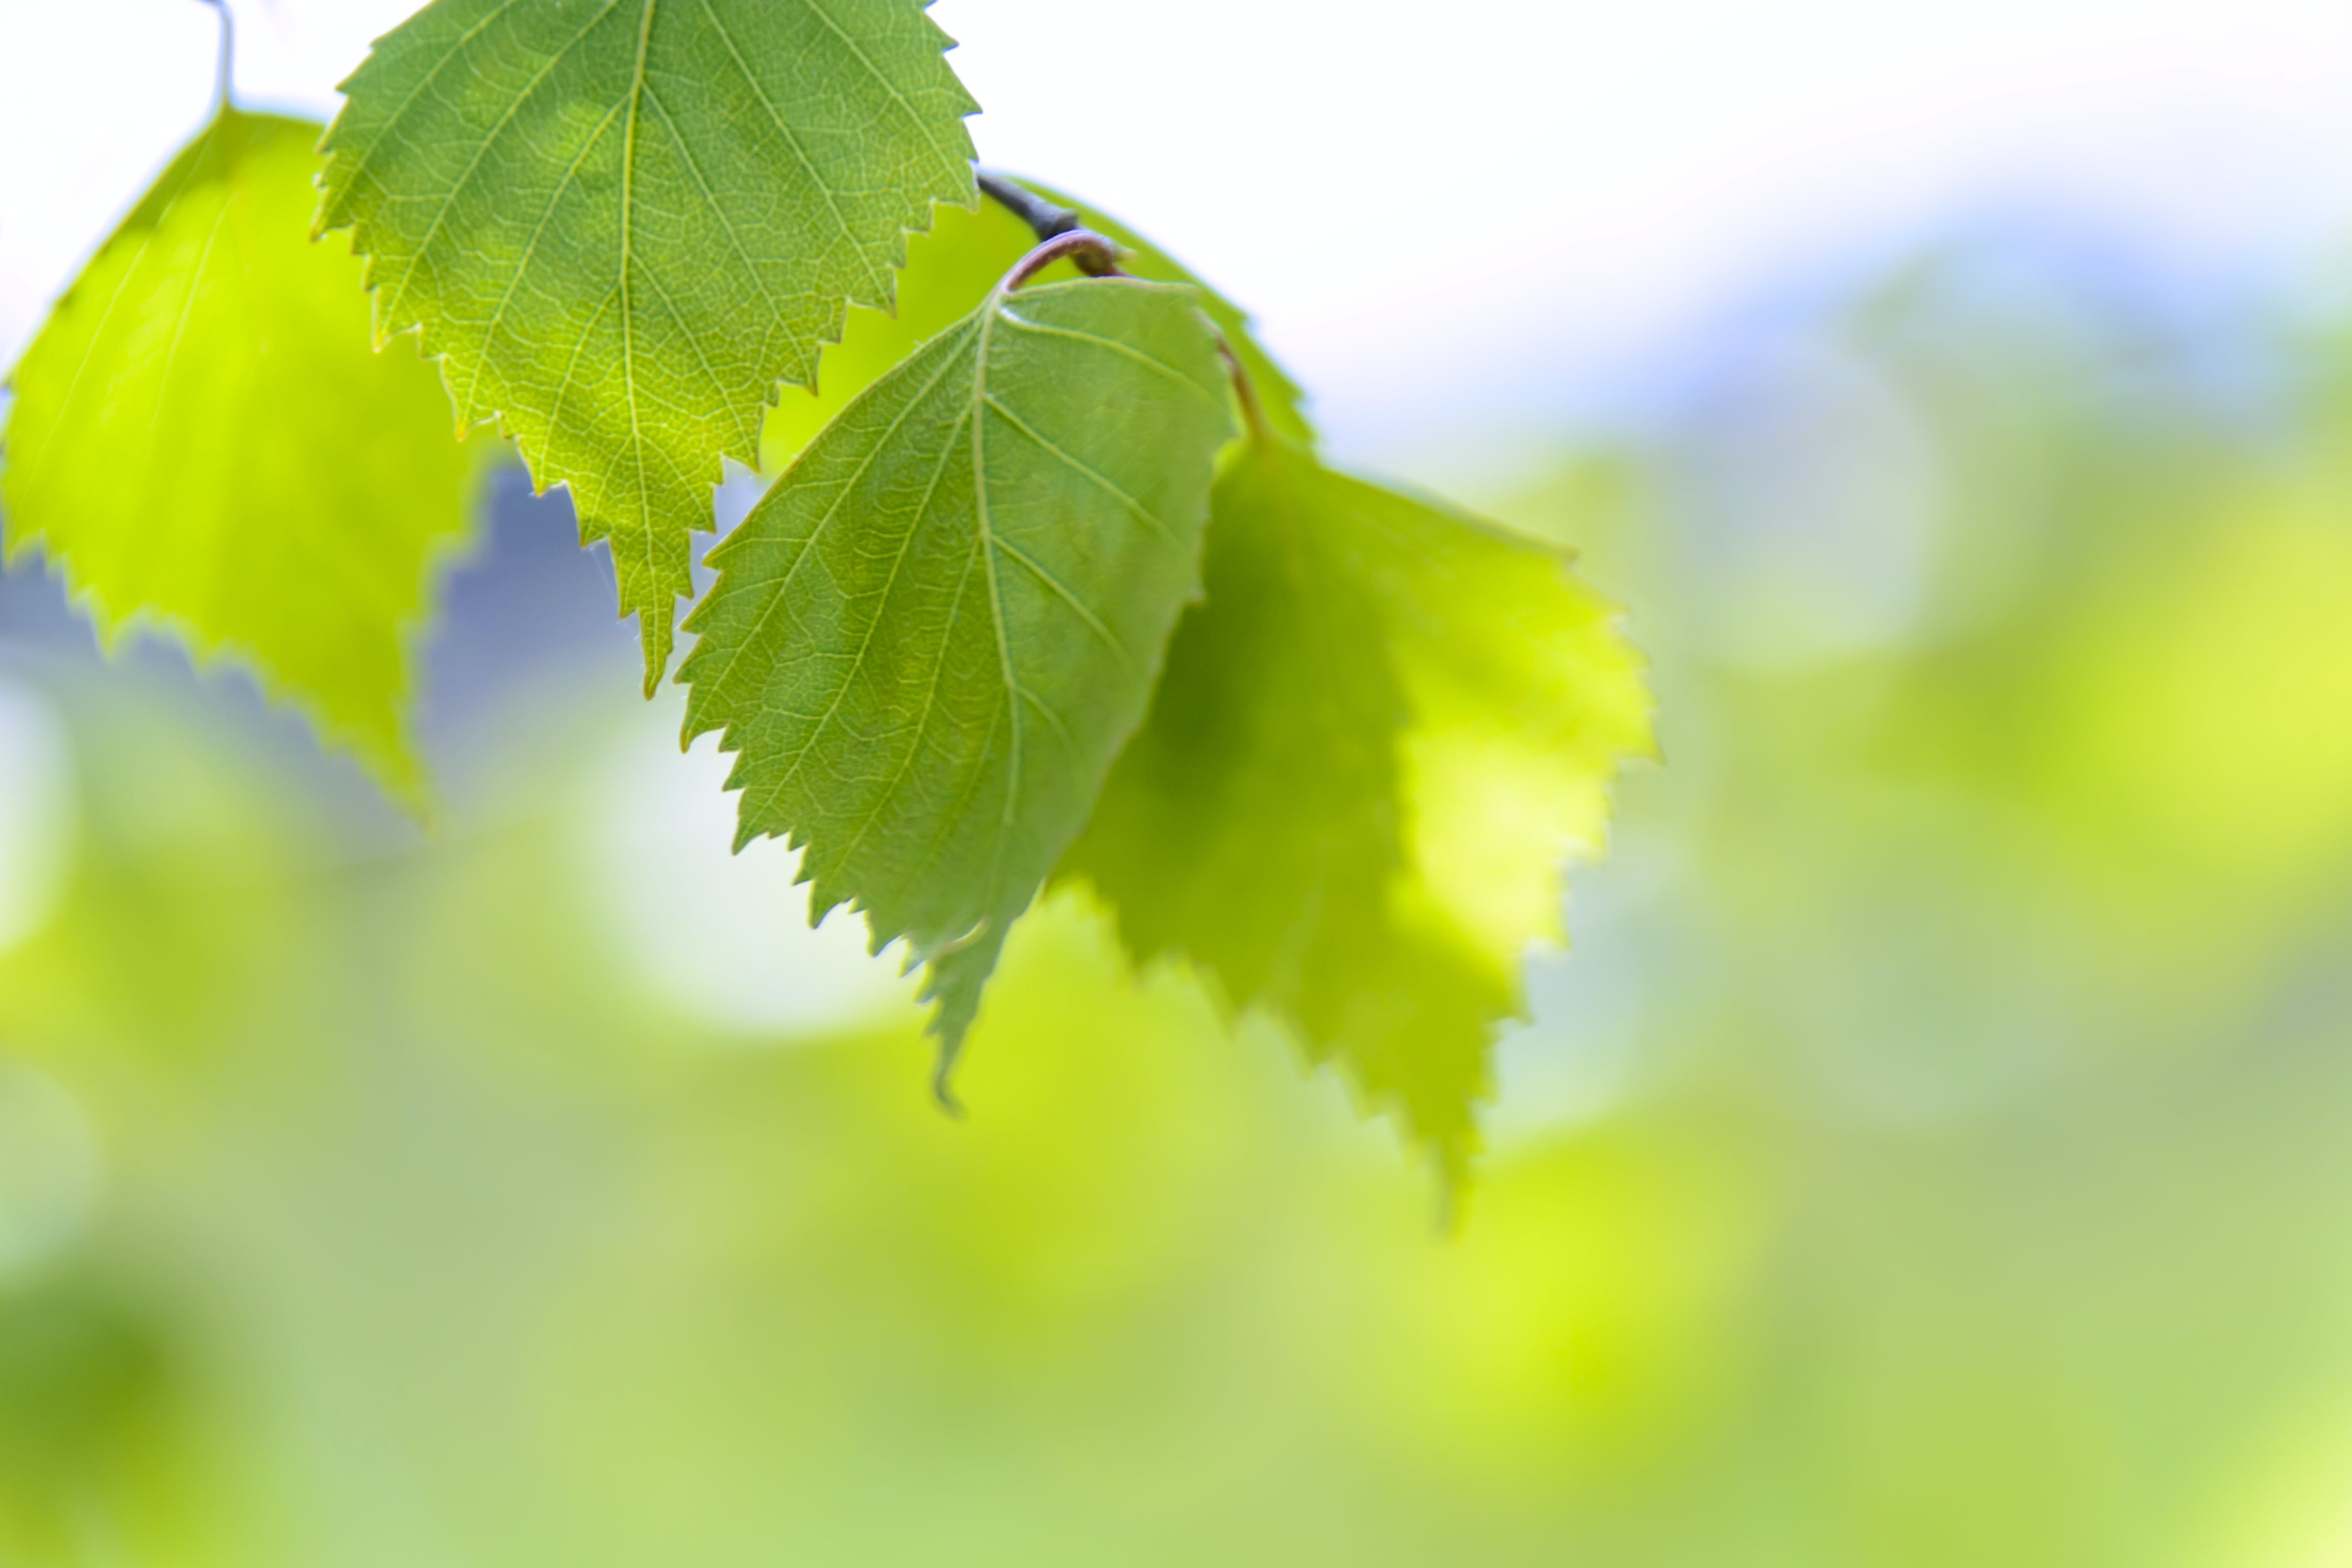 Focus Photography of Green Leaves